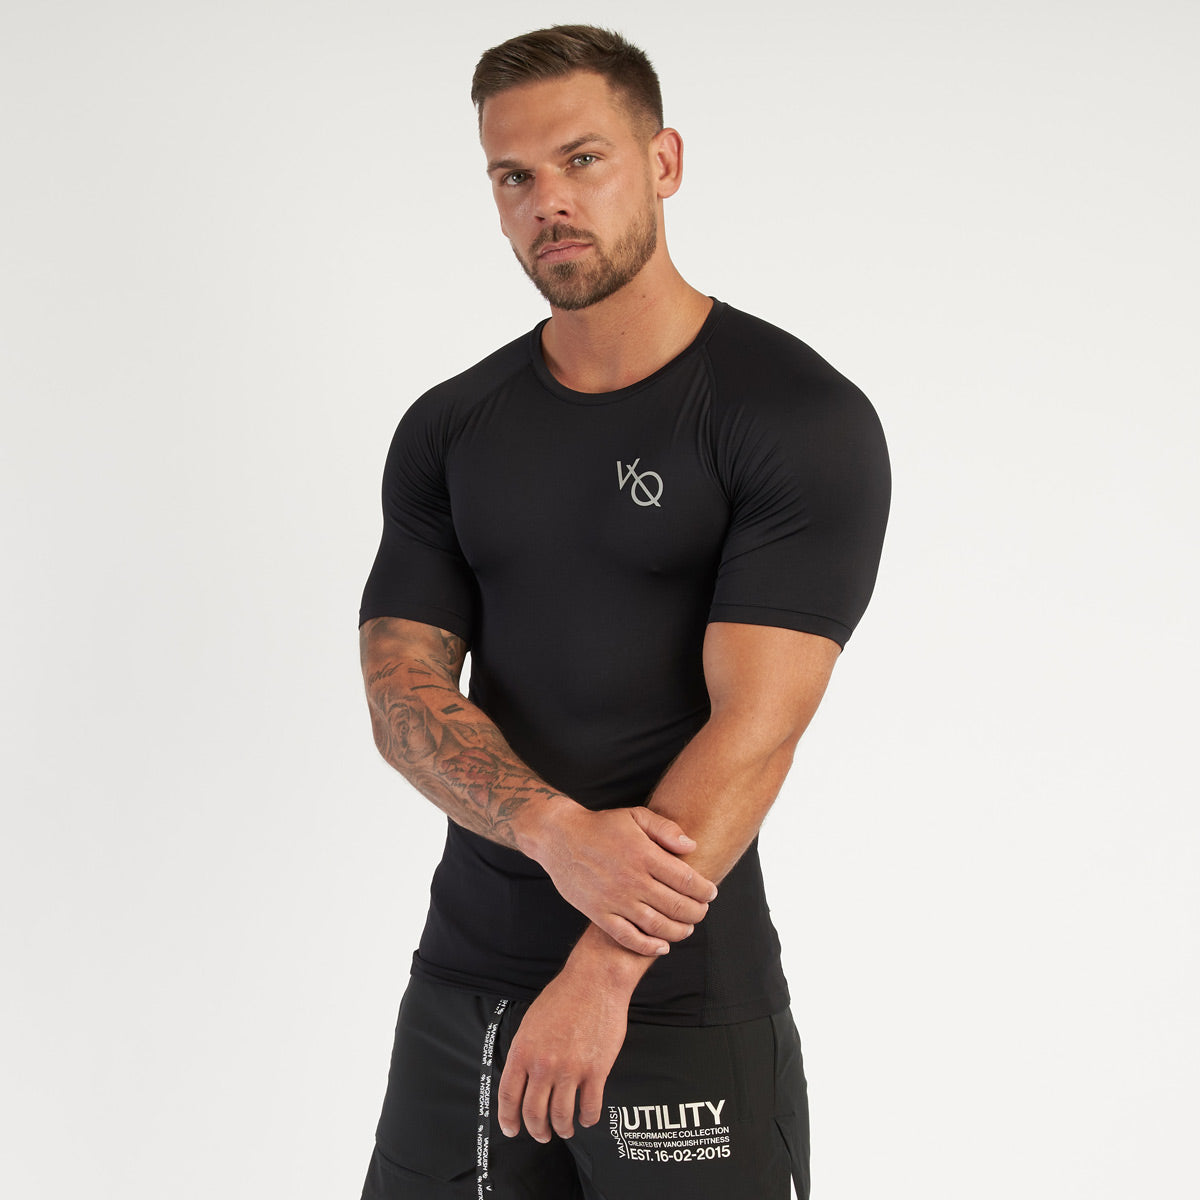 Vanquish Utility Men's Black Short Sleeved Compression T Shirt